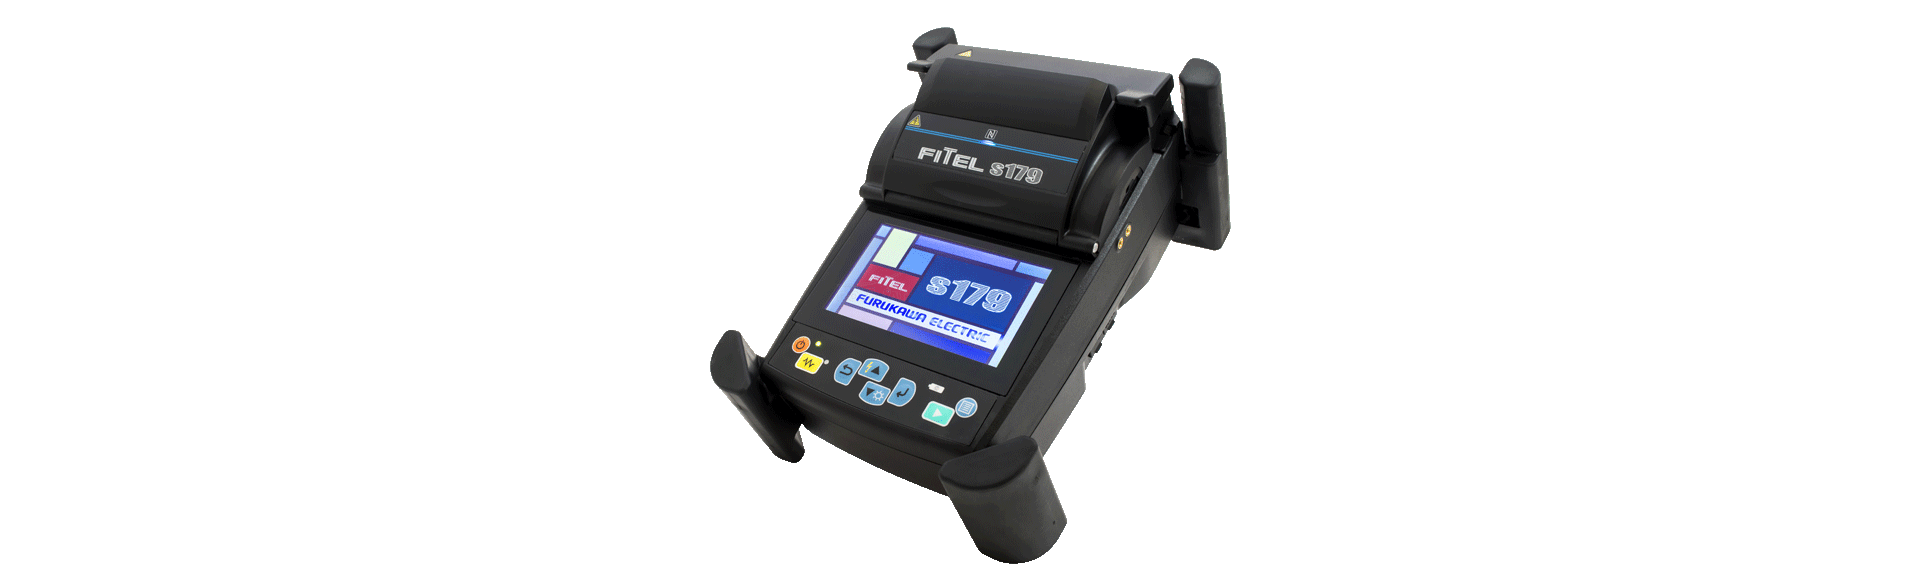 The exceptional FITEL S179 Fusion Splicer